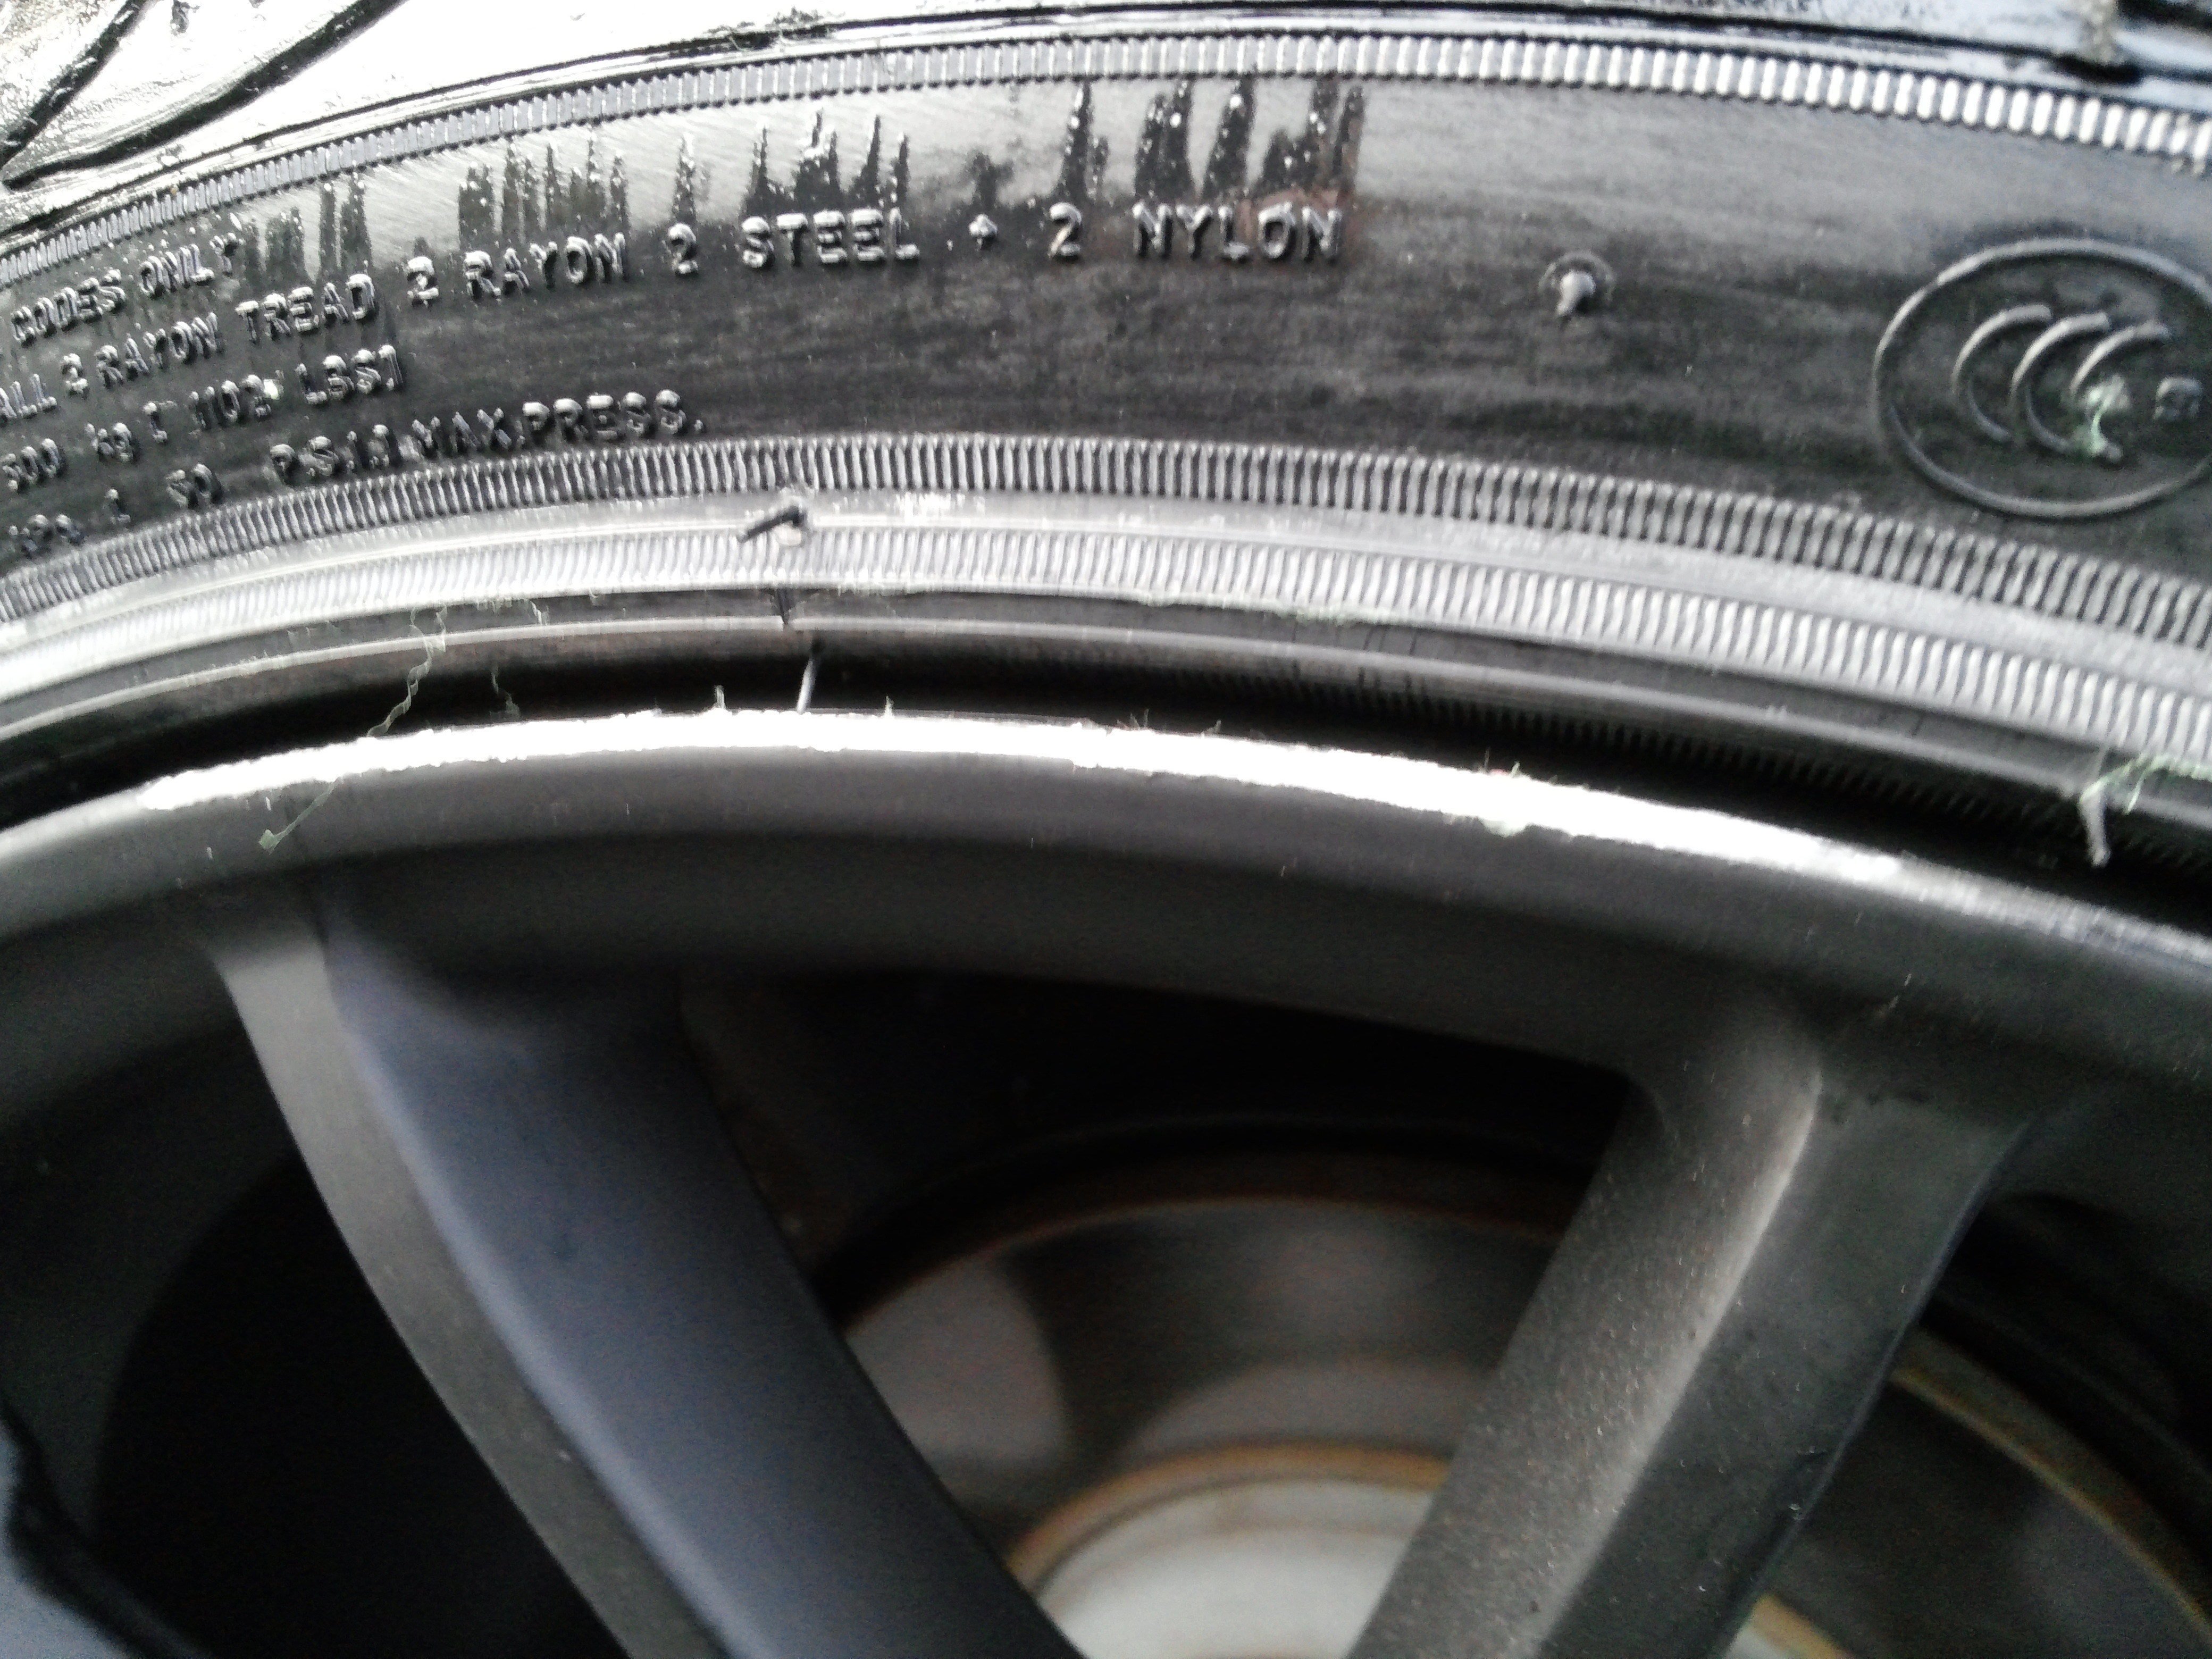 Ripoff report bmw financial services complaint review hilliard ohio - I Am Very Disappointed With The Quality Of Service One Of The Firestone Complete Auto Care Centers Gave Me Today 03 25 15 Store 018945 Tigard Or